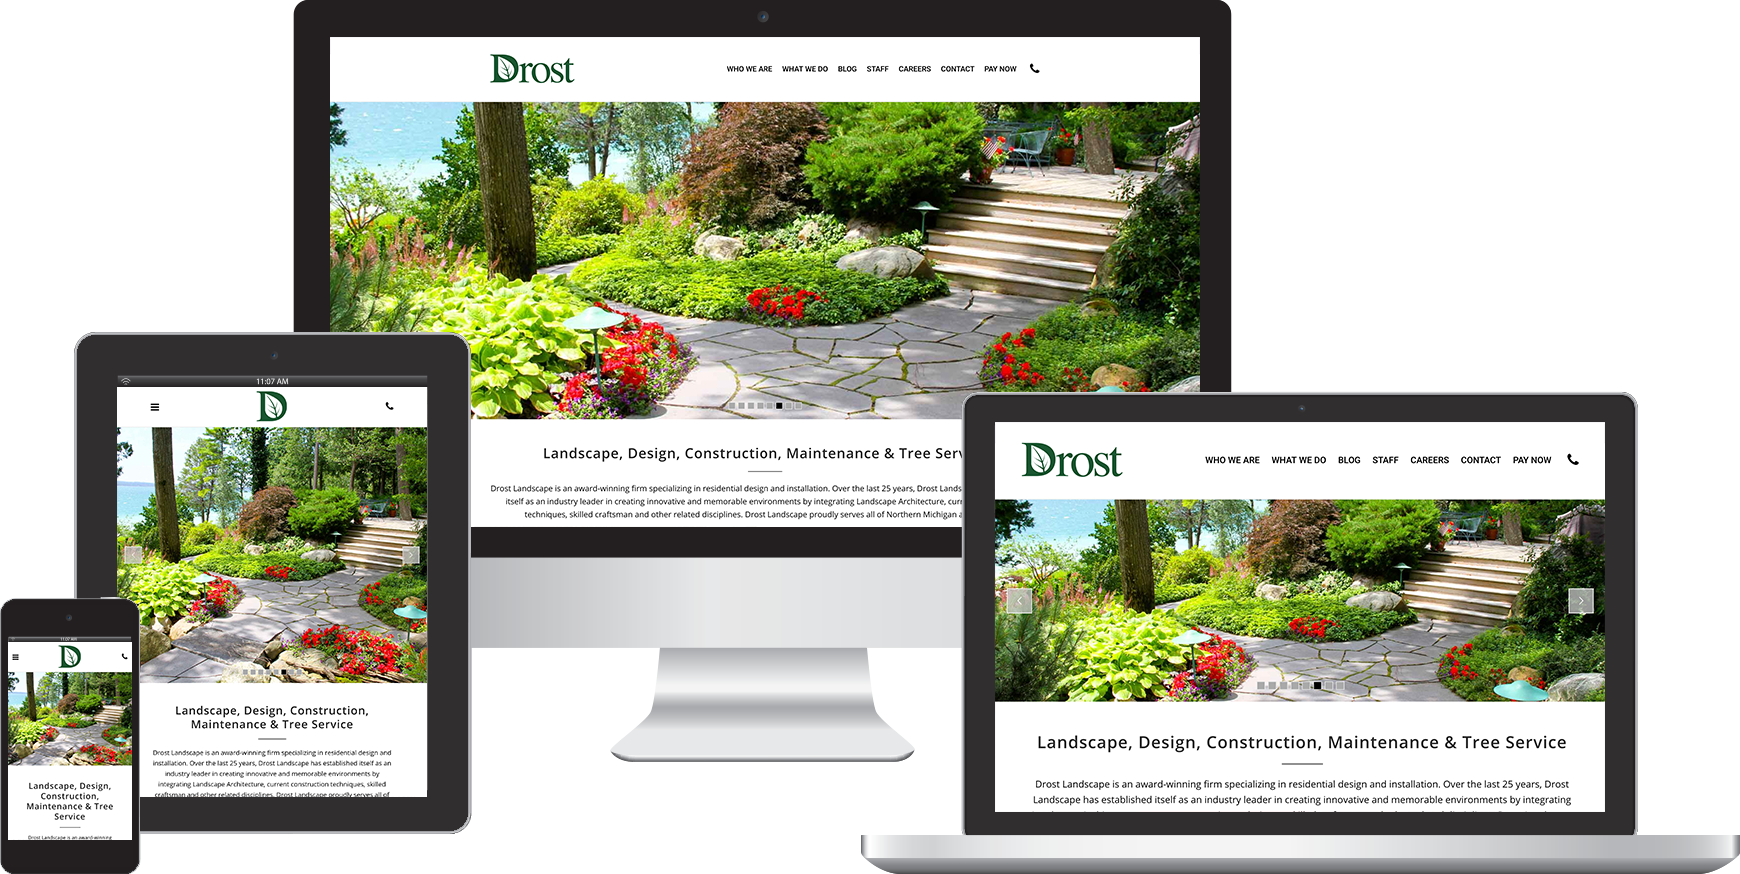 drost landscape website